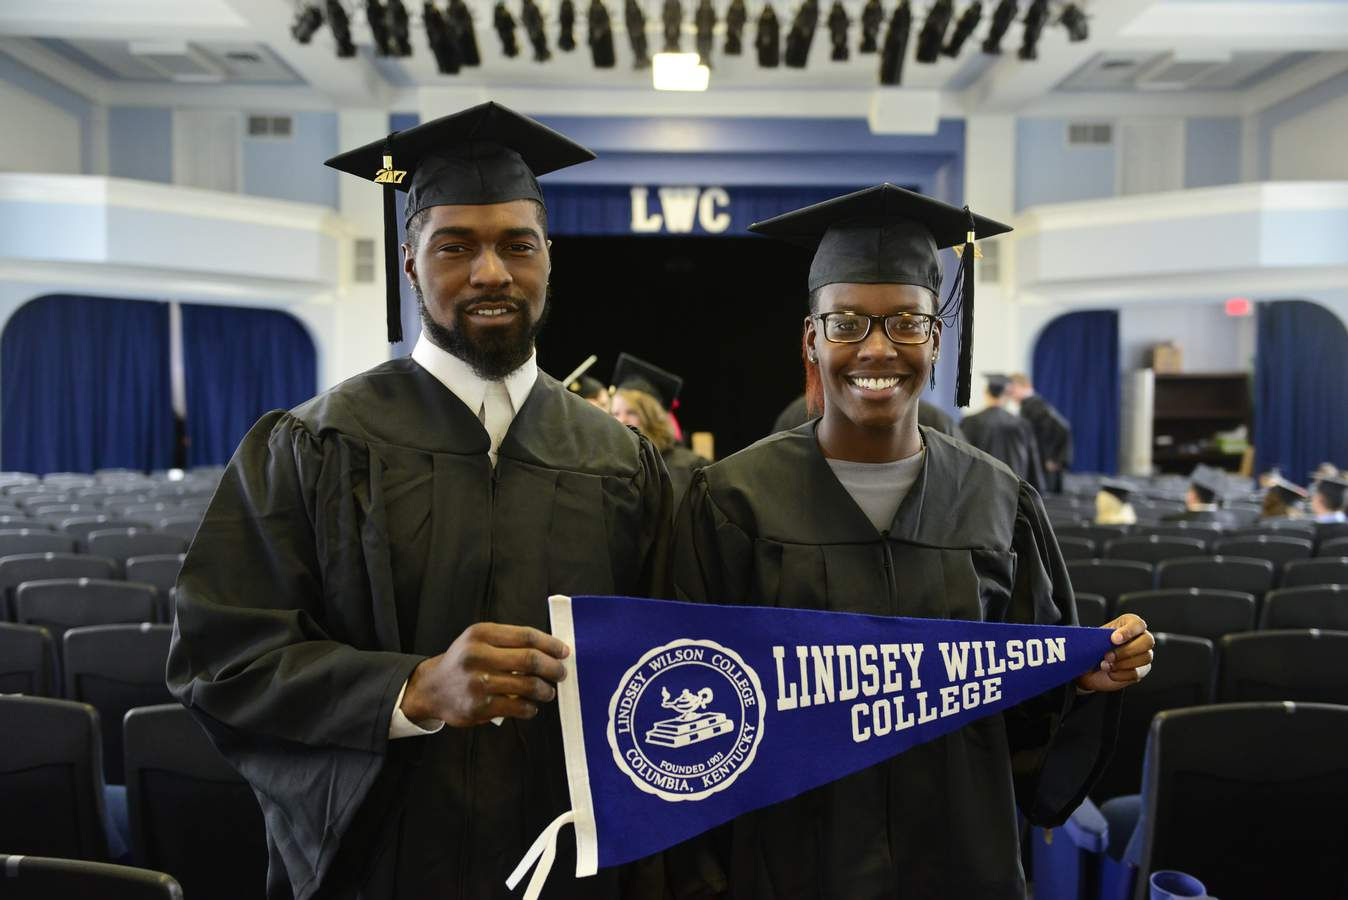 LWC Breaks All-Time Alumni Participation Record